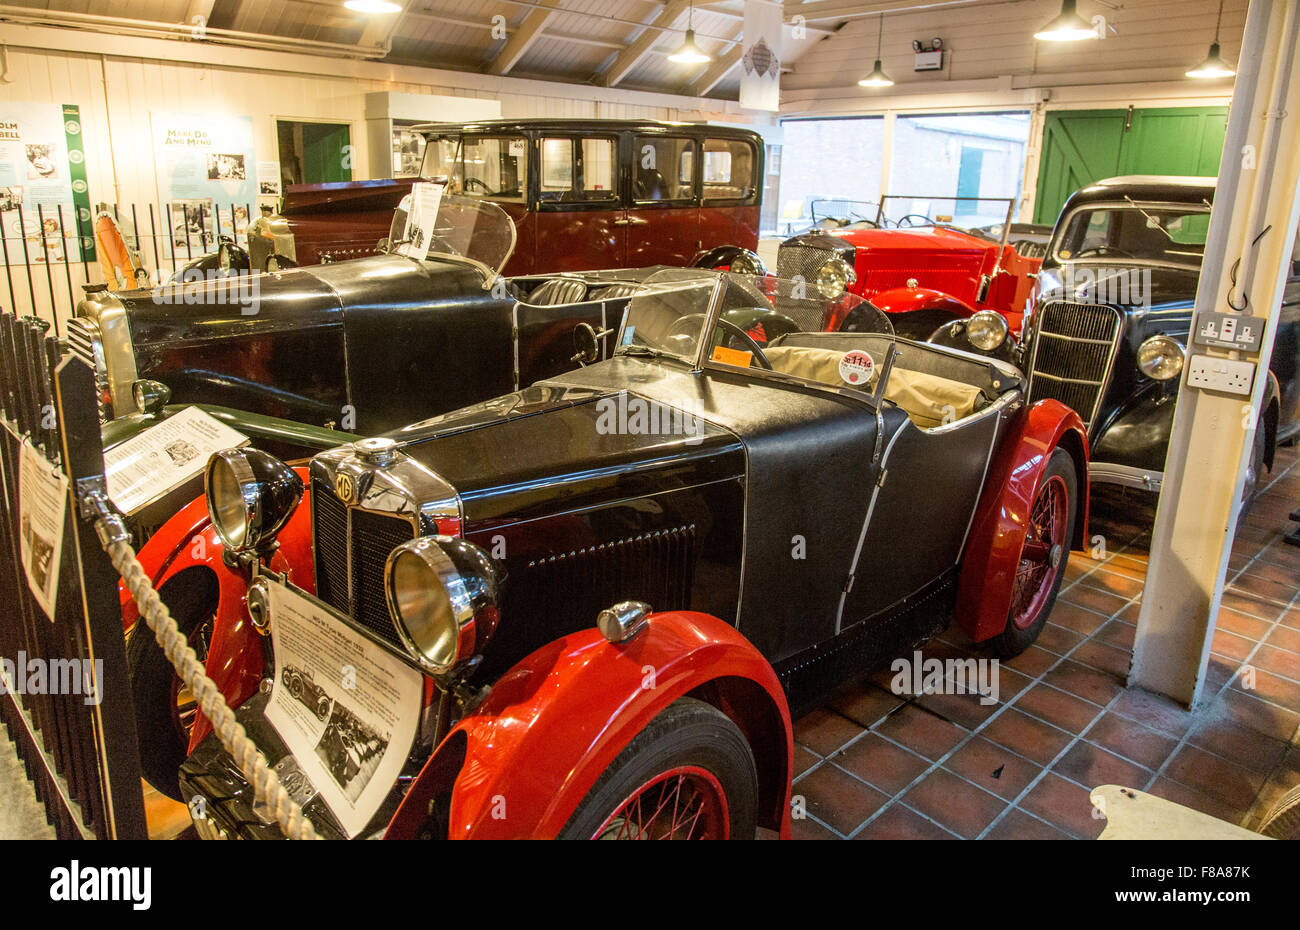 Classic Cars In The Brooklands Museum Weybridge London UK - Stock Image